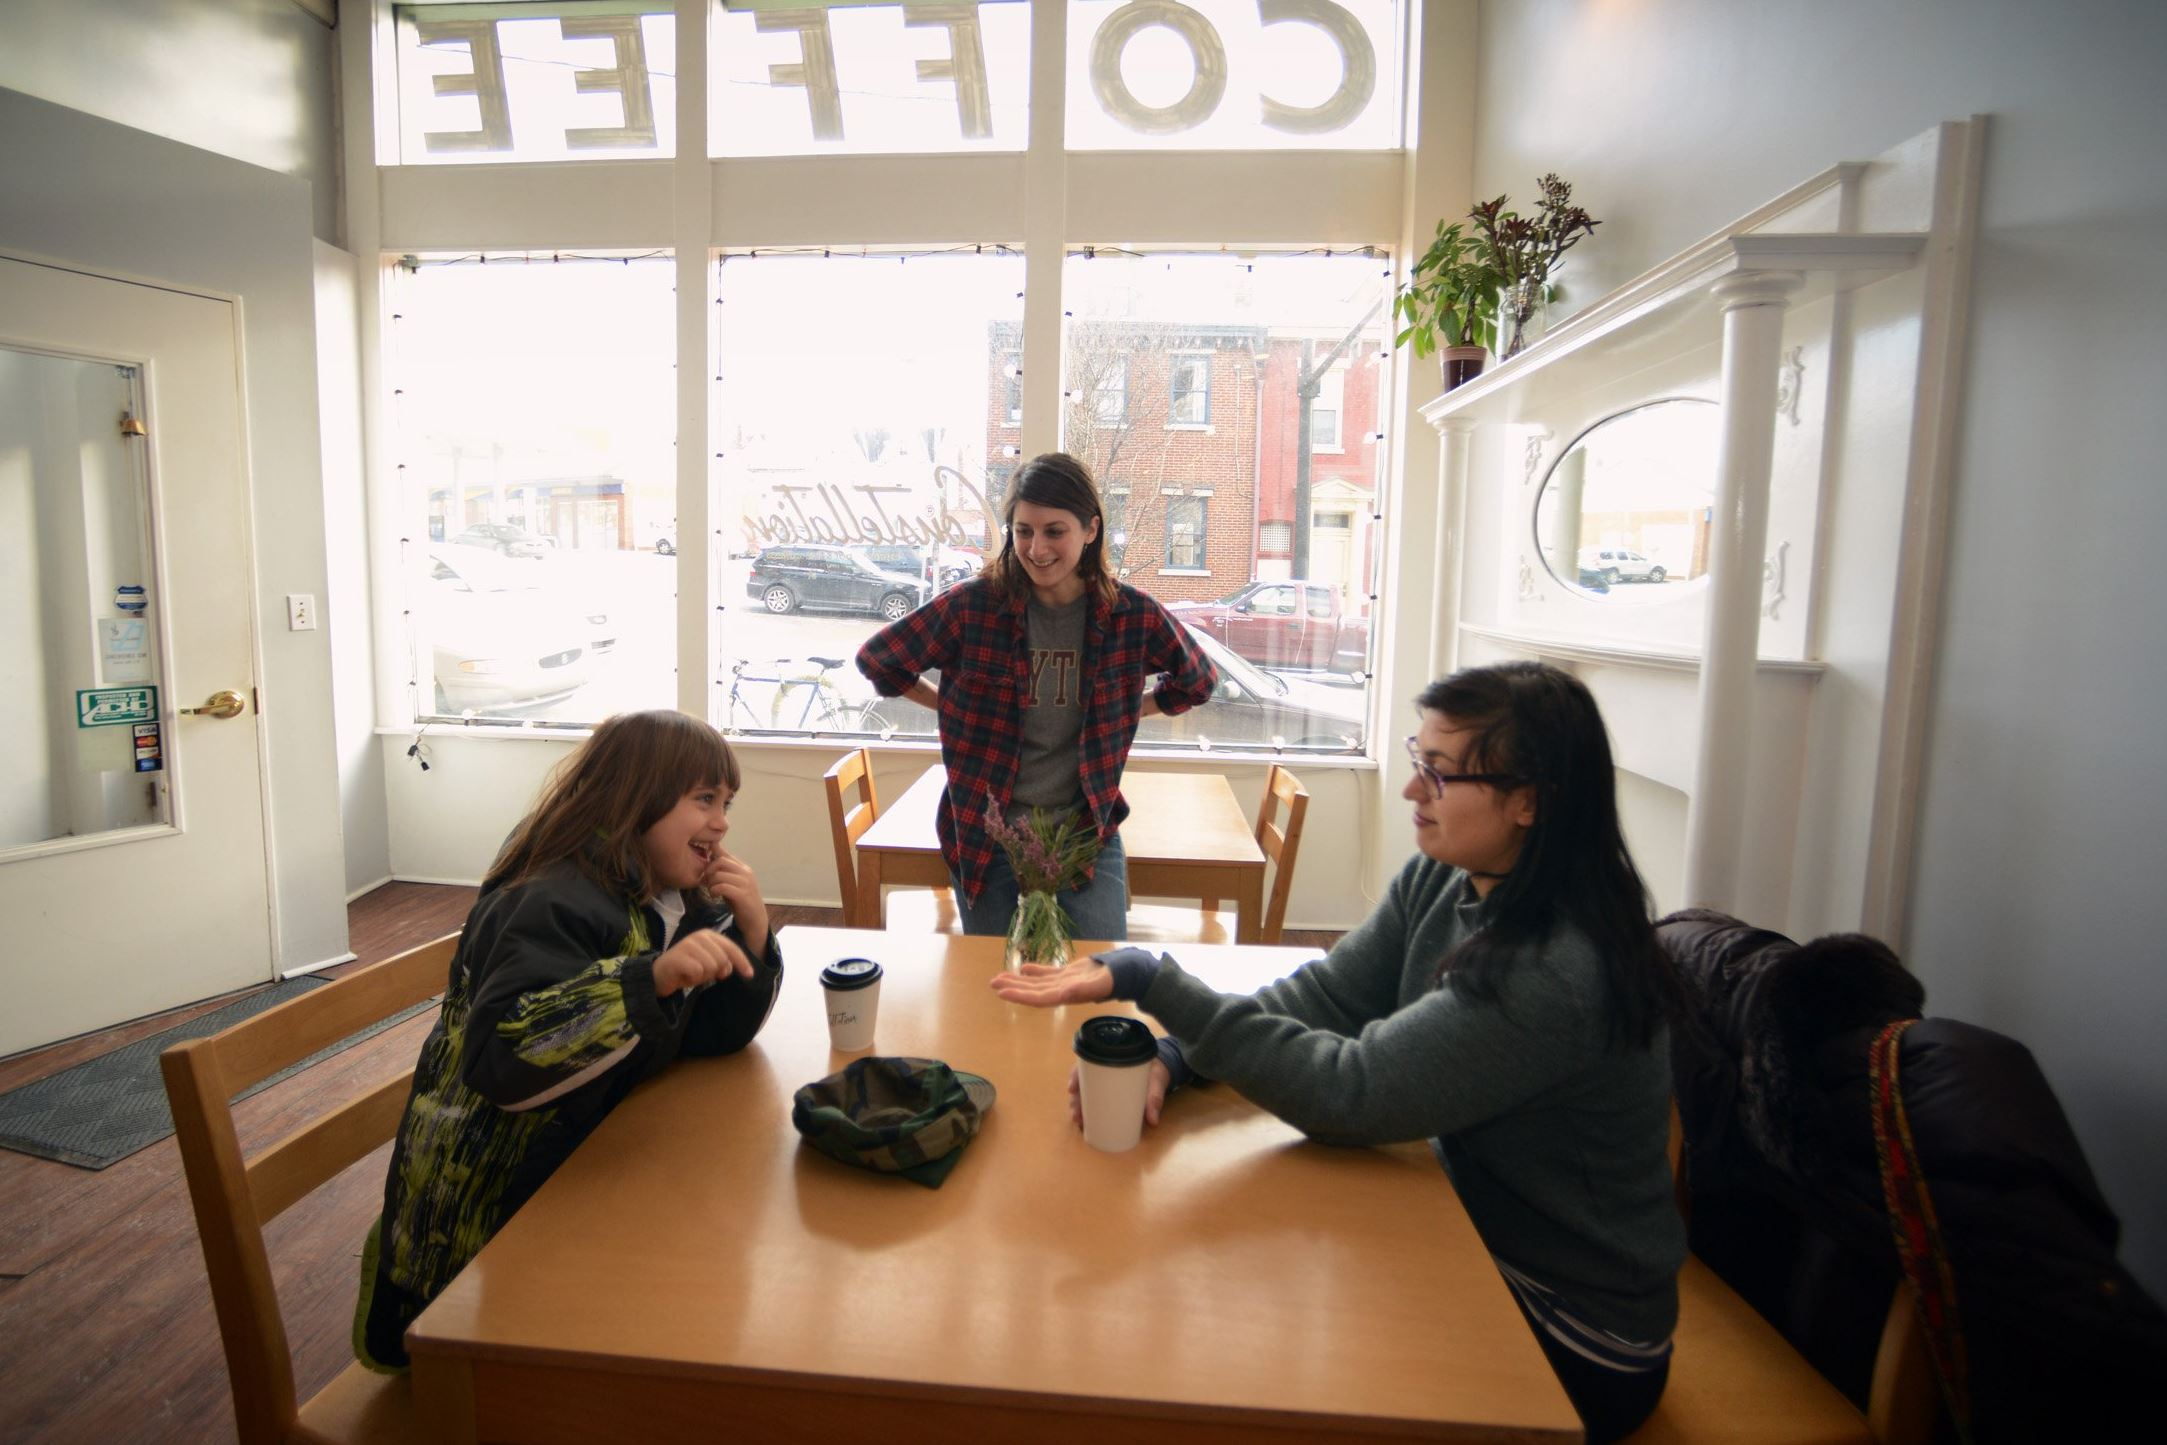 Constellation Coffe Amy Weiland, center, owner of Constellation Coffee, 4059 Penn Ave. in Lawrenceville, talks with Nikolai Pridannikov, left, and his mother, Nina Segreti of Highland Park, who stopped in for some hot drinks.